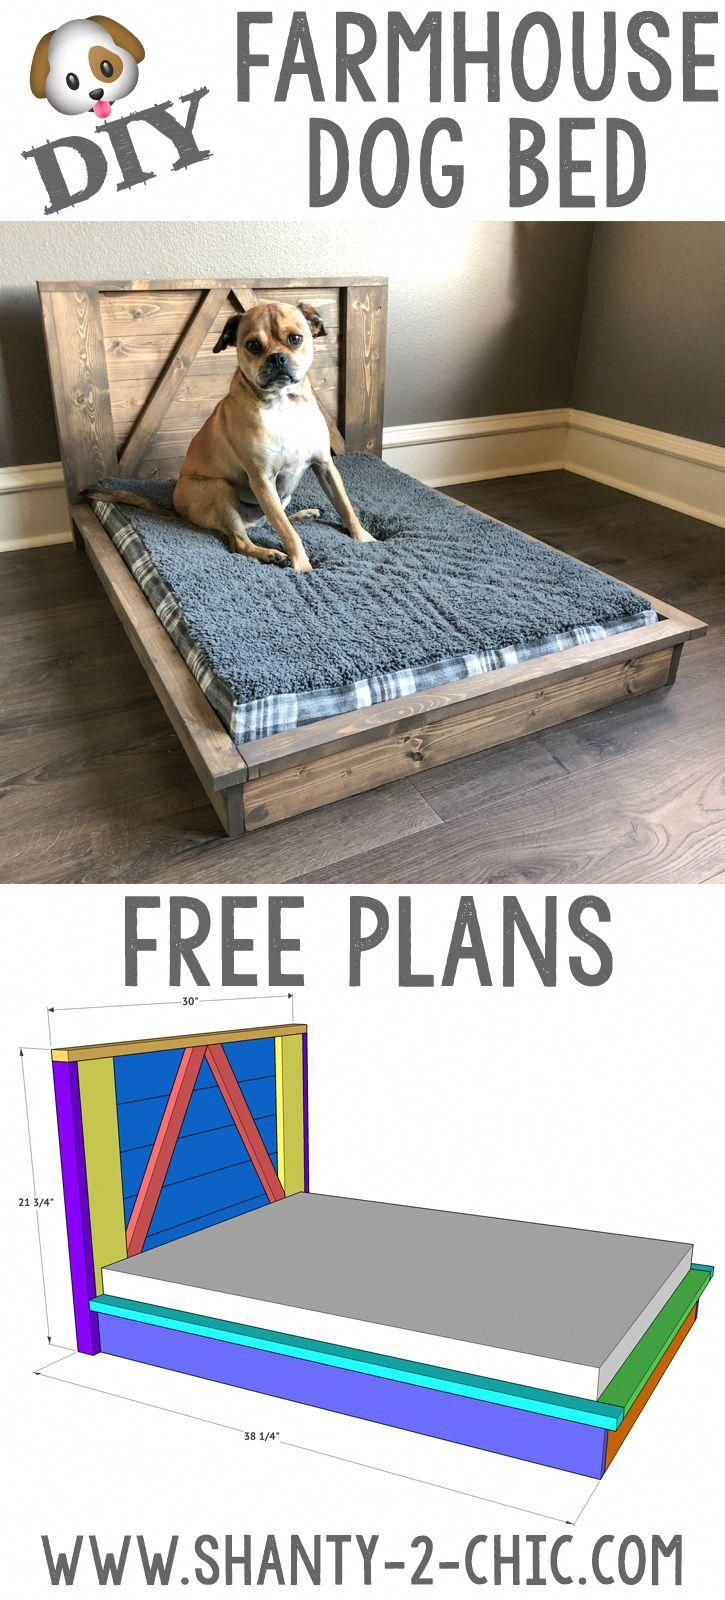 Download Great DIY Dog from shanty-2-chic.com